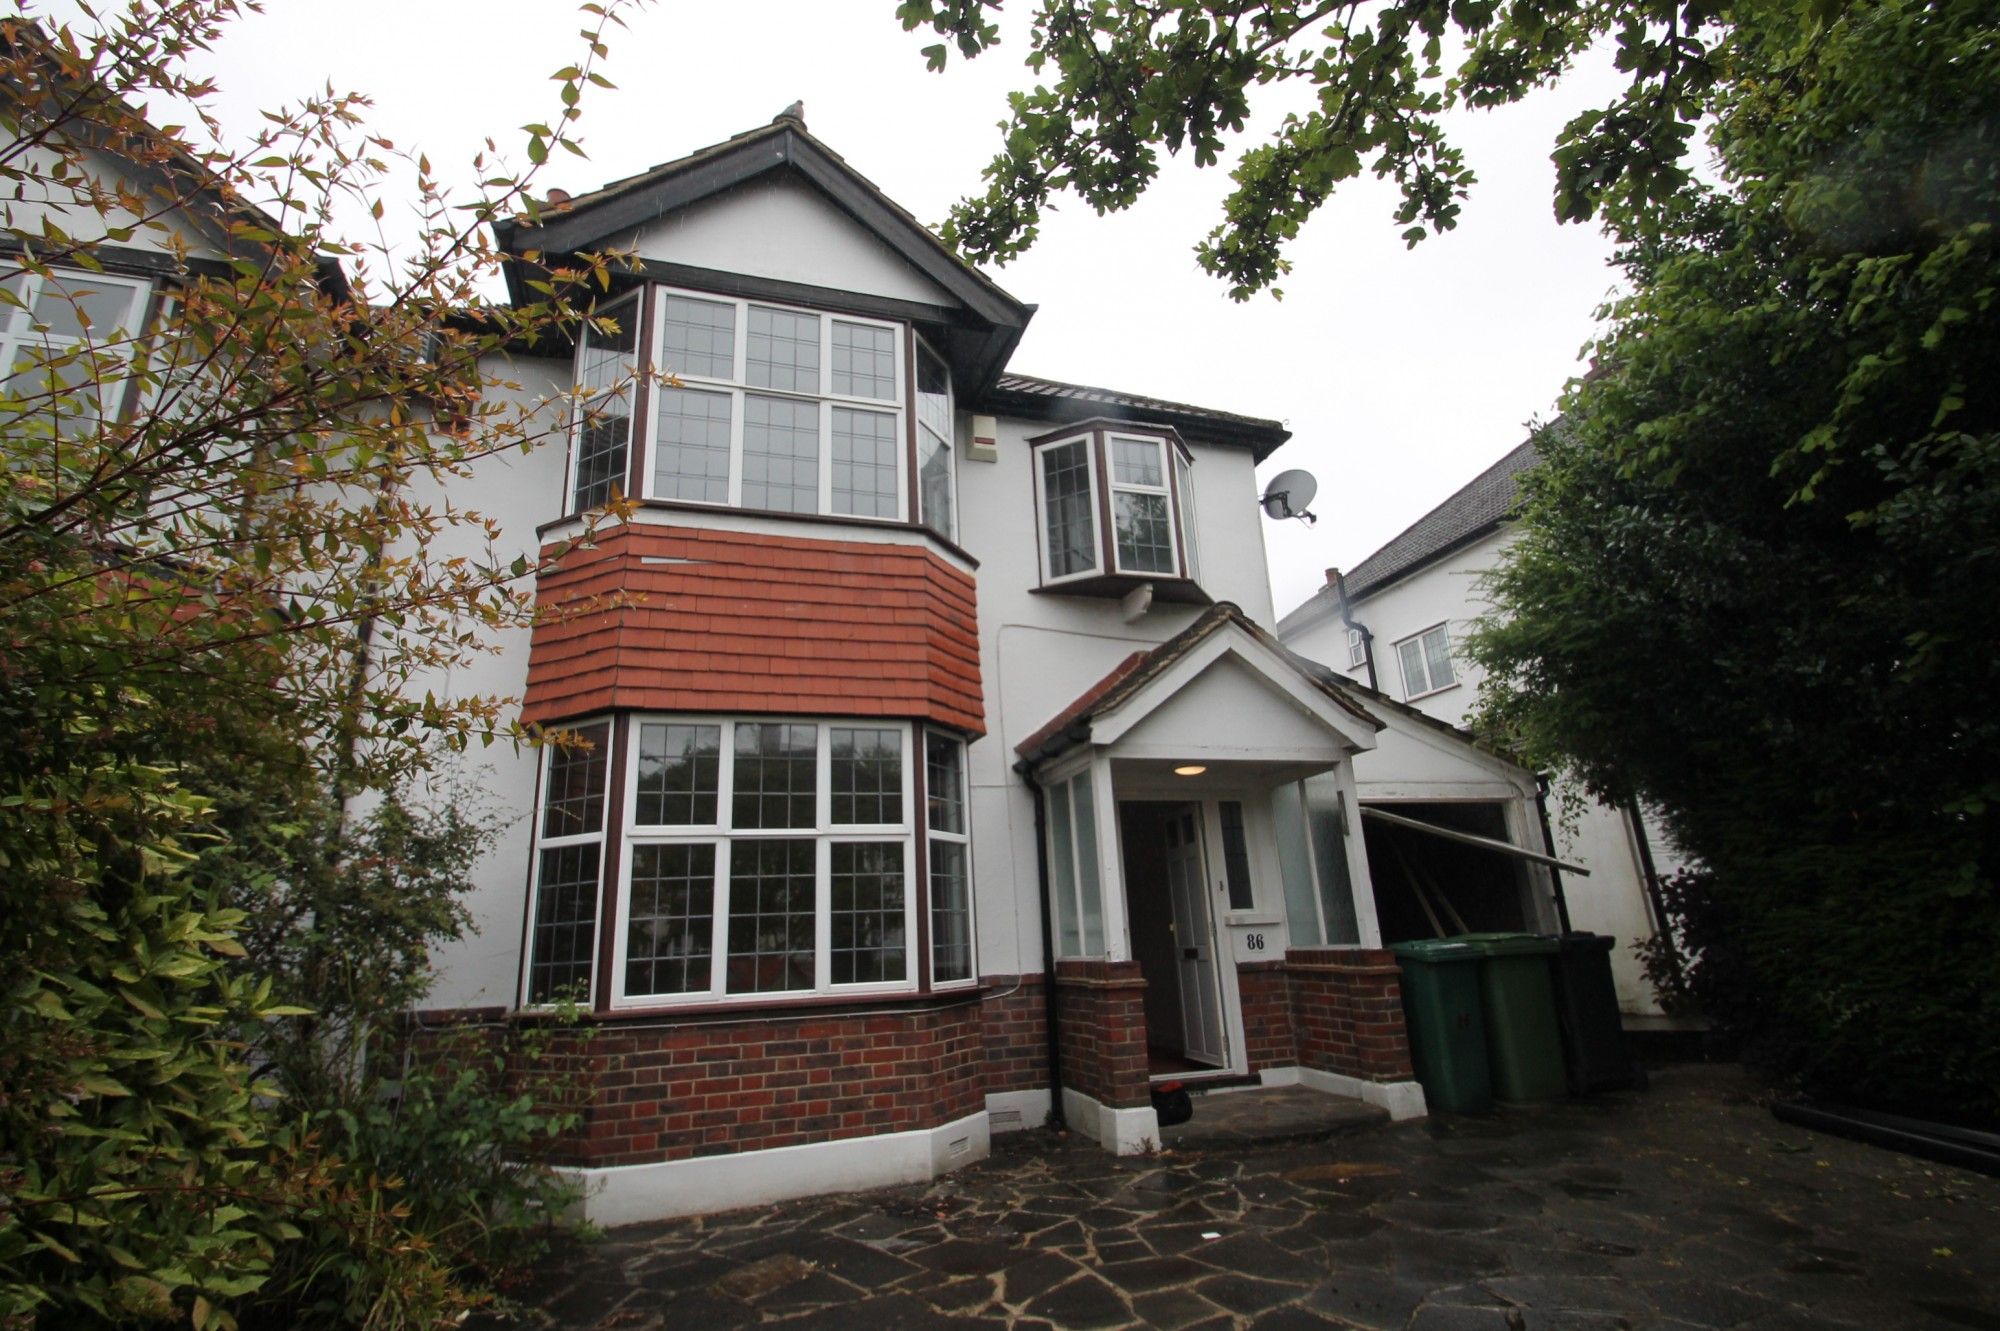 Image of Property for Sale in Banstead